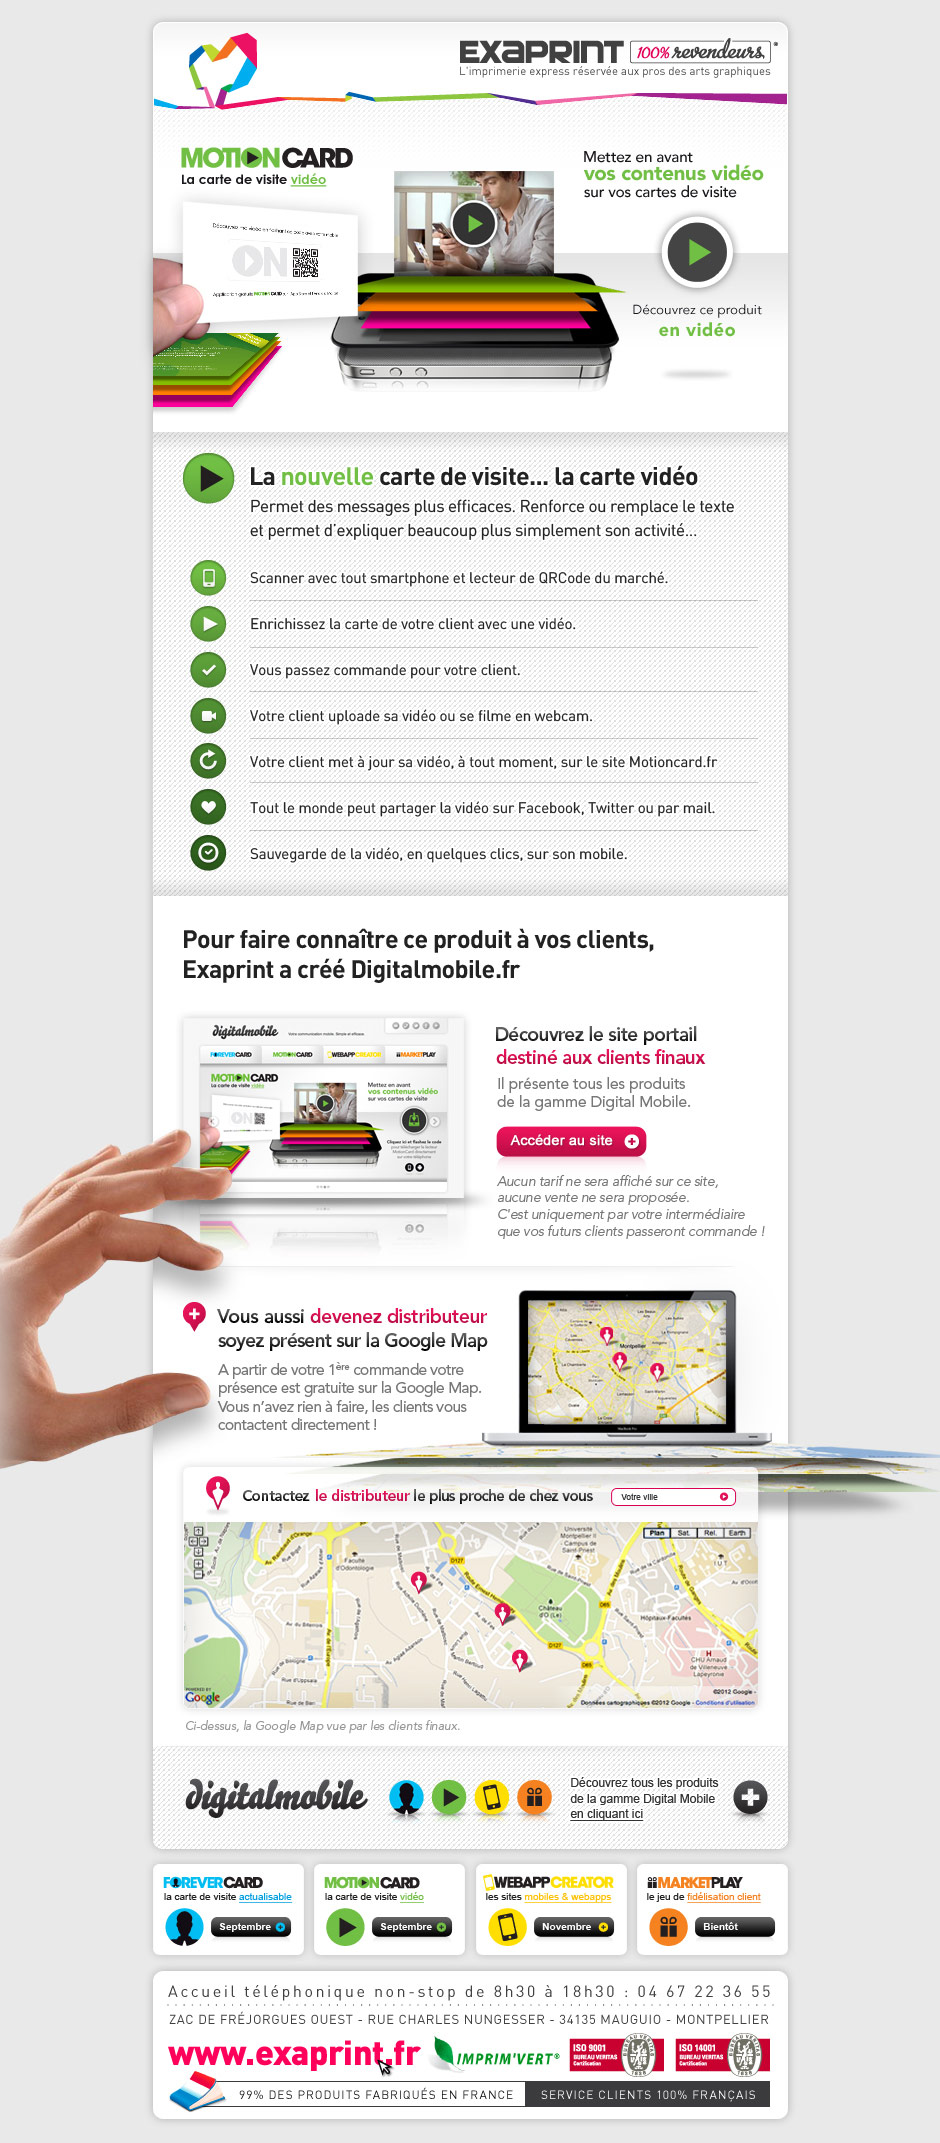 graphiste-montpellier-creation-exaprint-motioncard-agence-communication-montpellier-caconcept-alexis-cretin-4